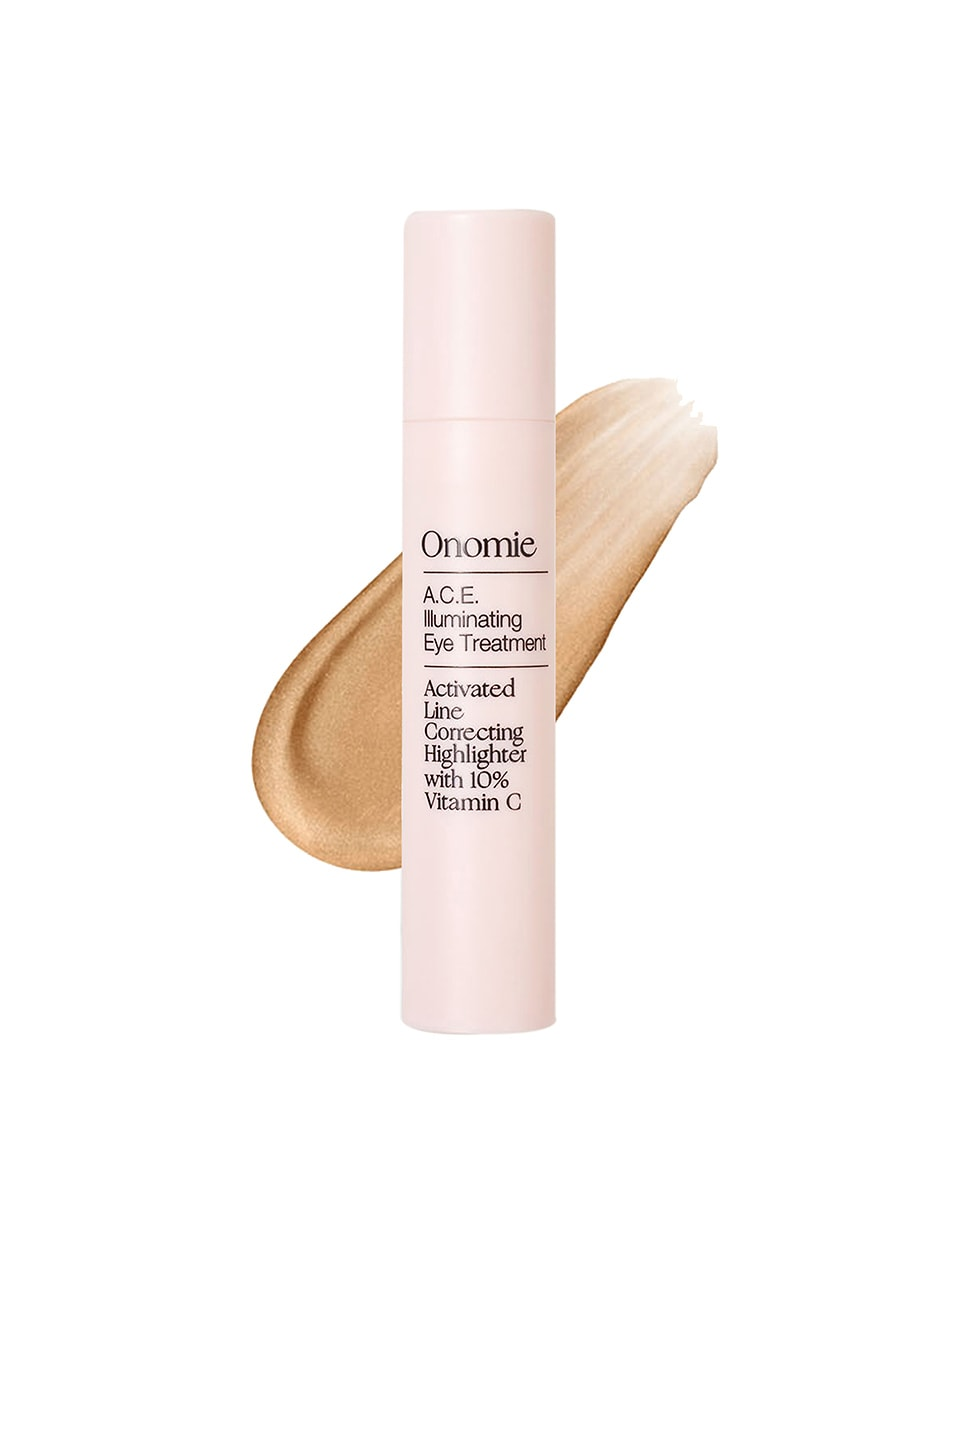 ONOMIE A.C.E. Illuminating Eye Treatment in Gold